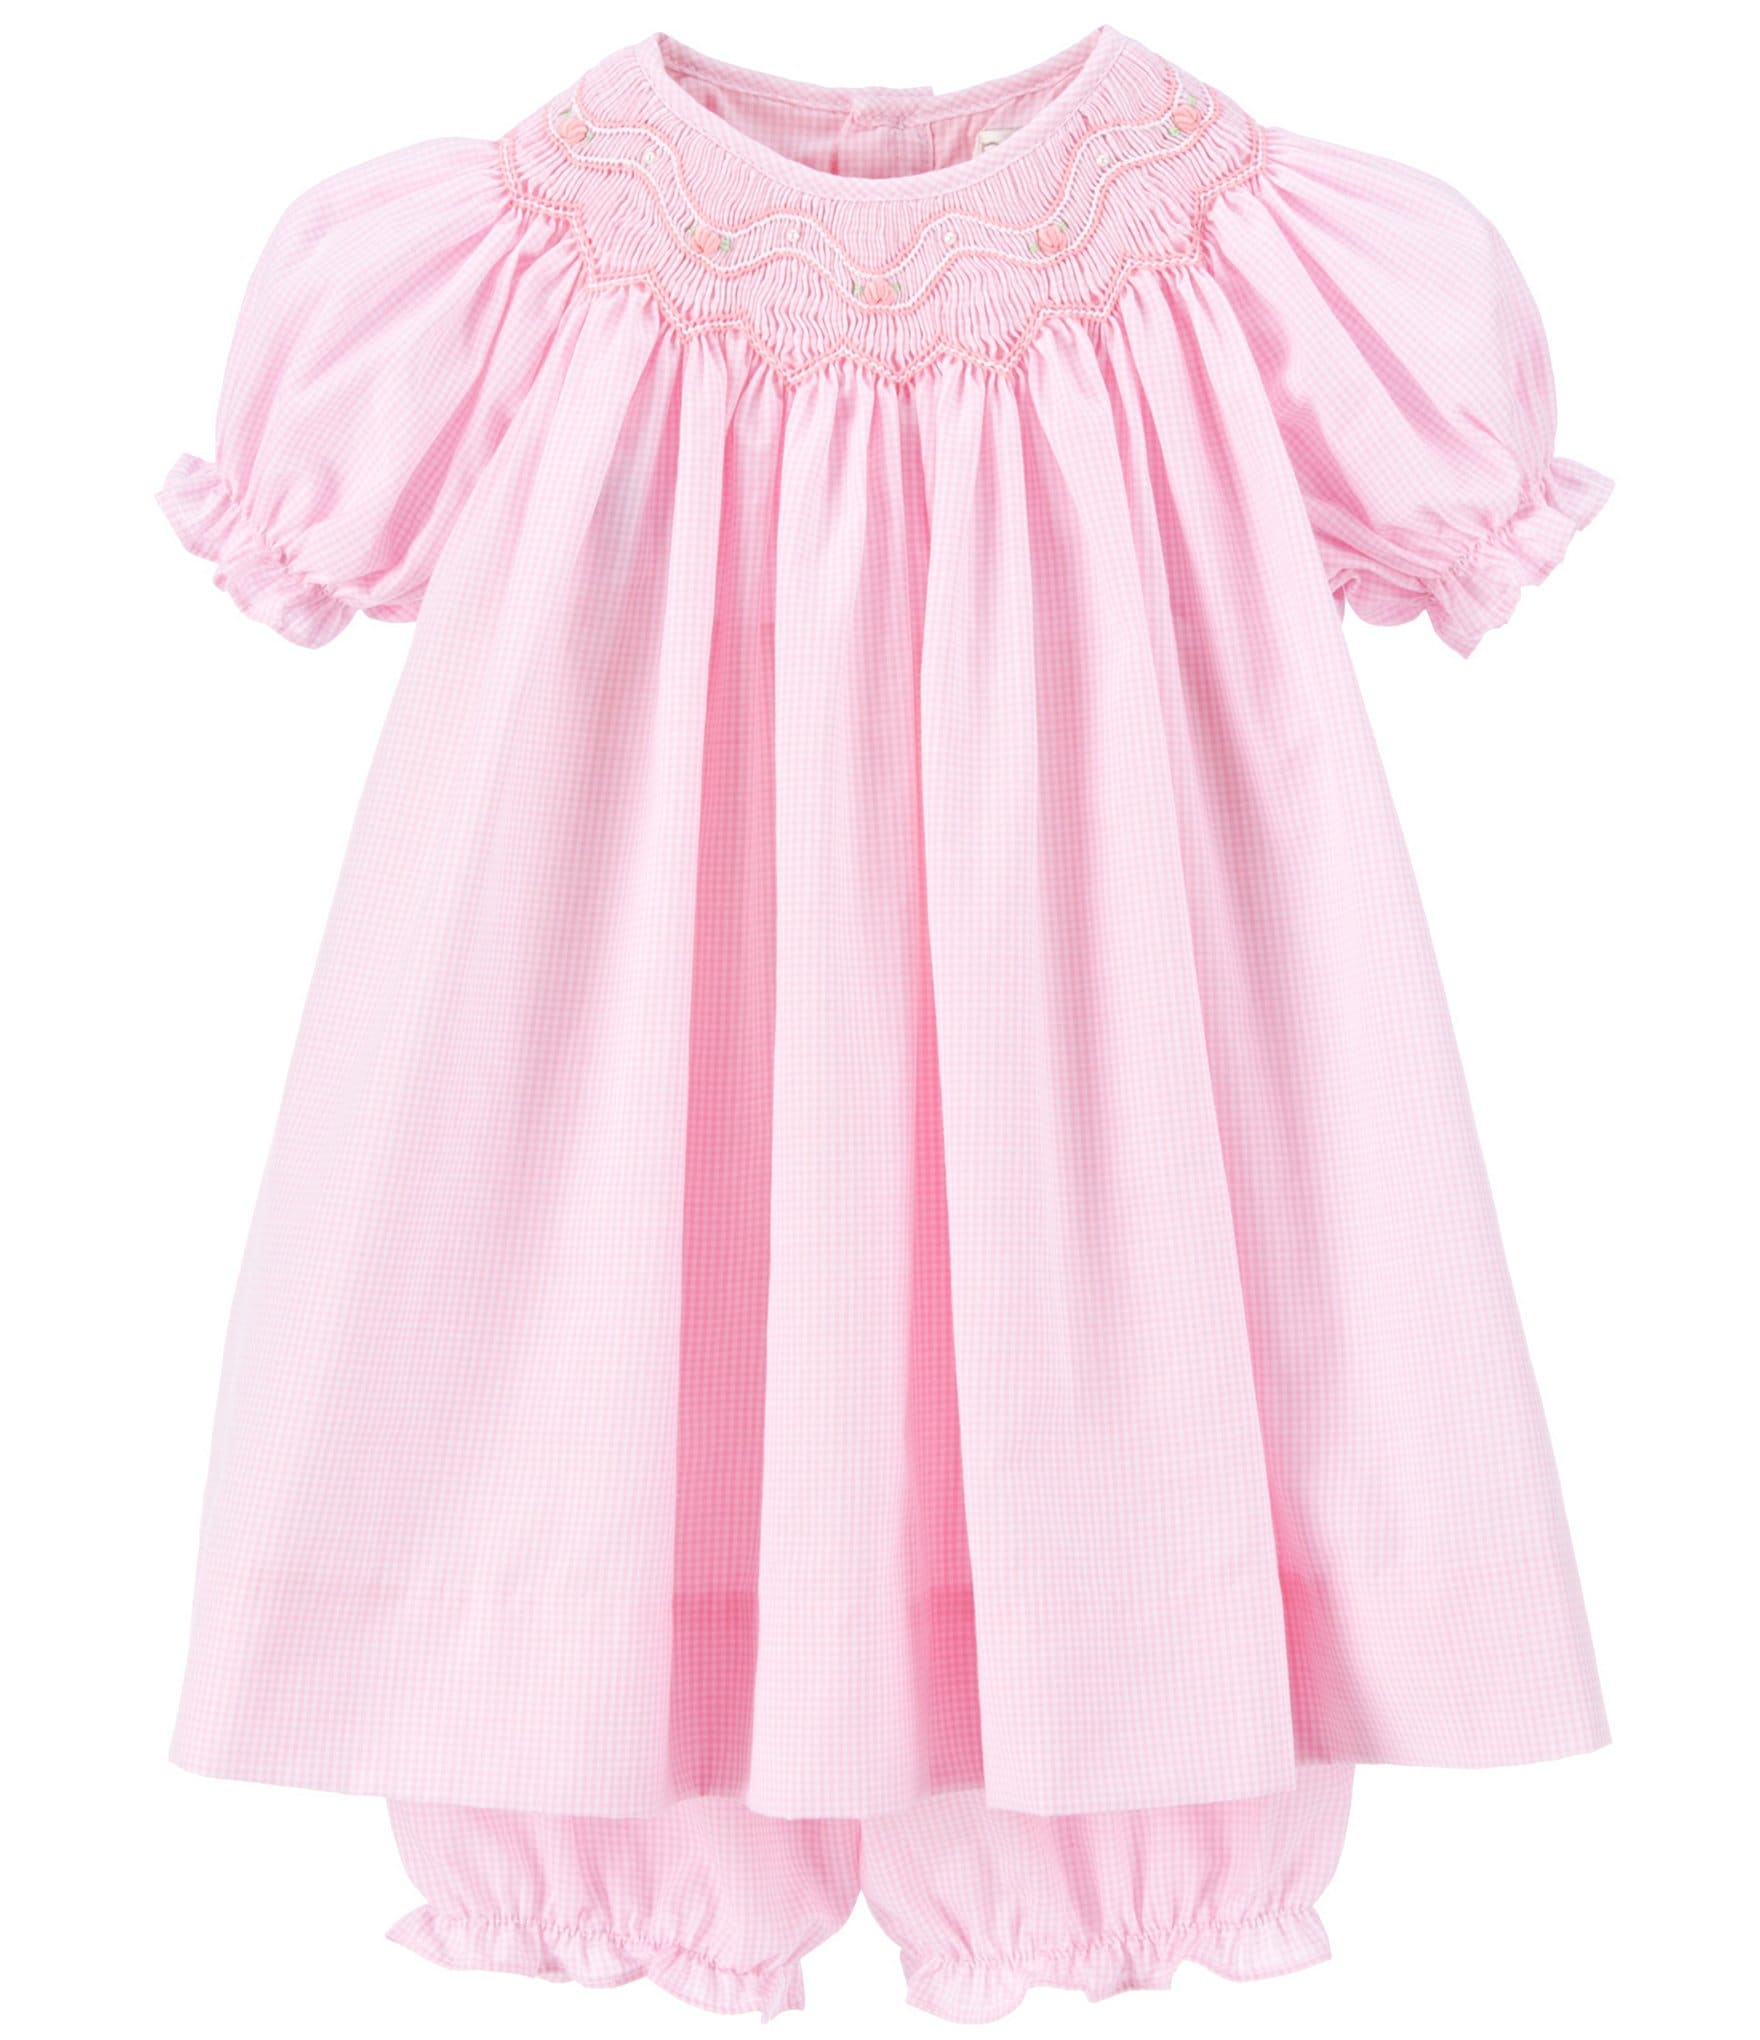 Luxury Ideas Of Dillards Baby Dresses - Cutest Baby Clothing and ...